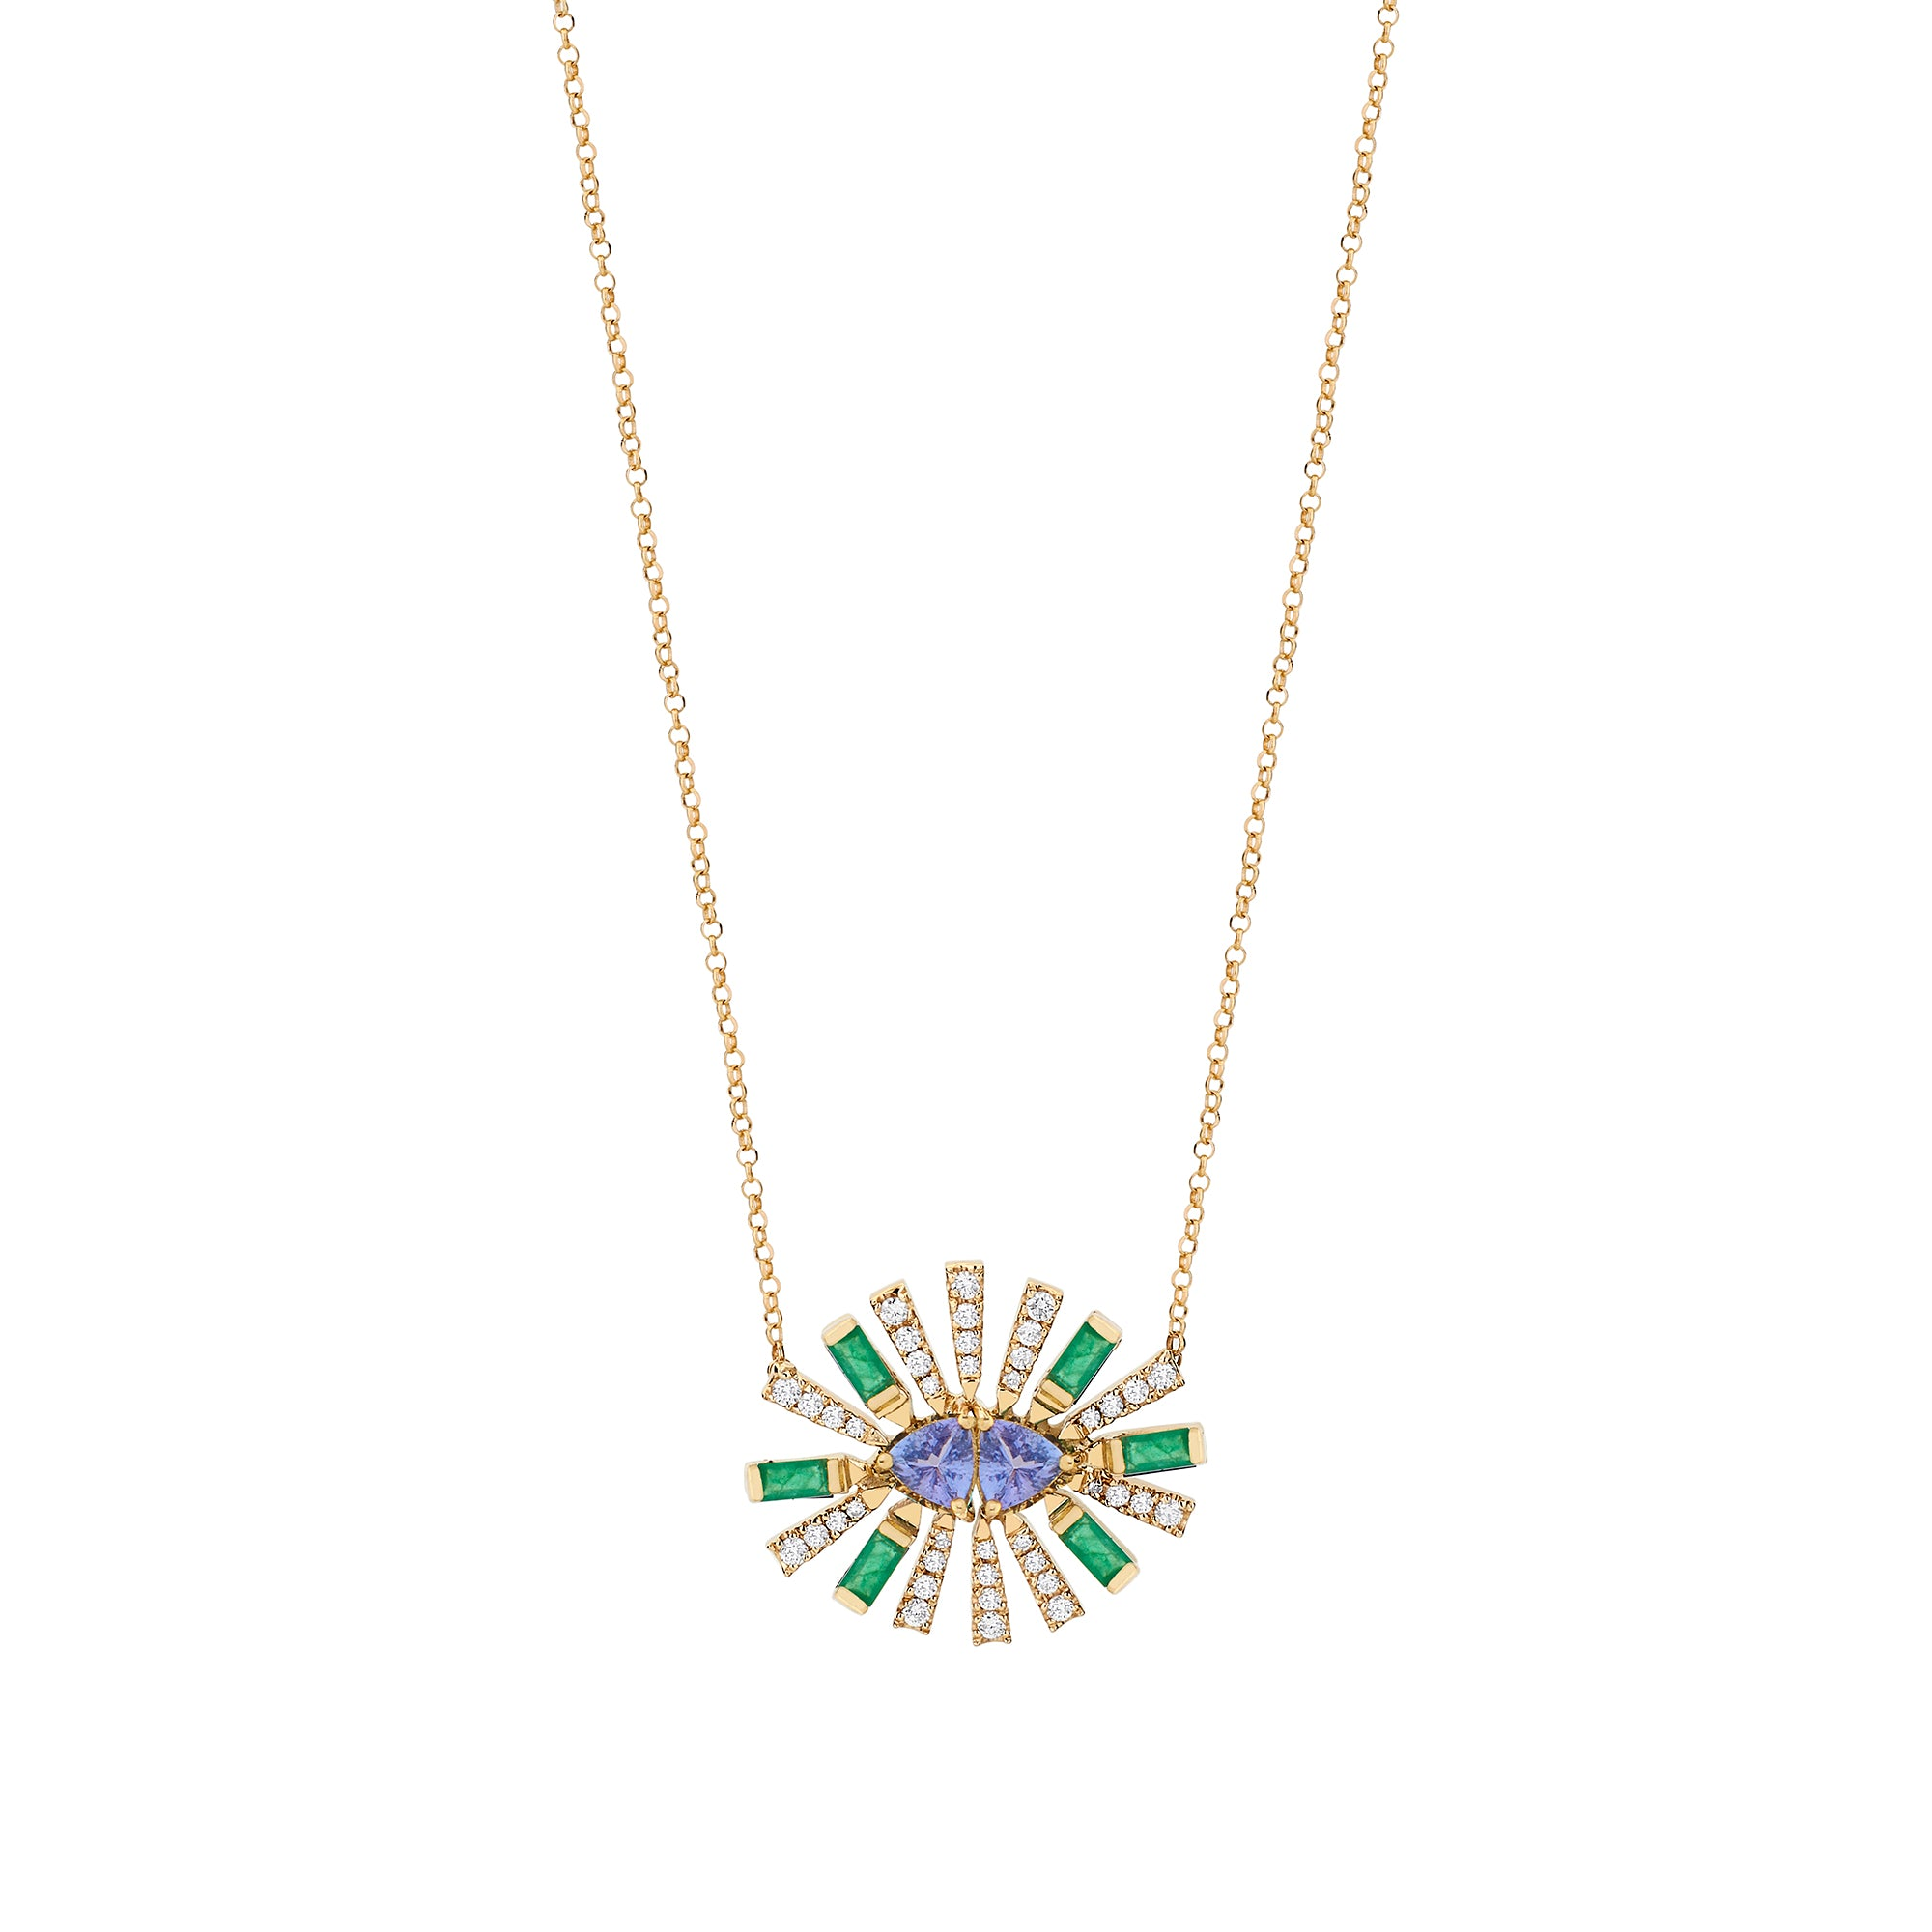 Emerald Double Sunshine Necklace - Carol Kauffman - Necklaces | Broken English Jewelry